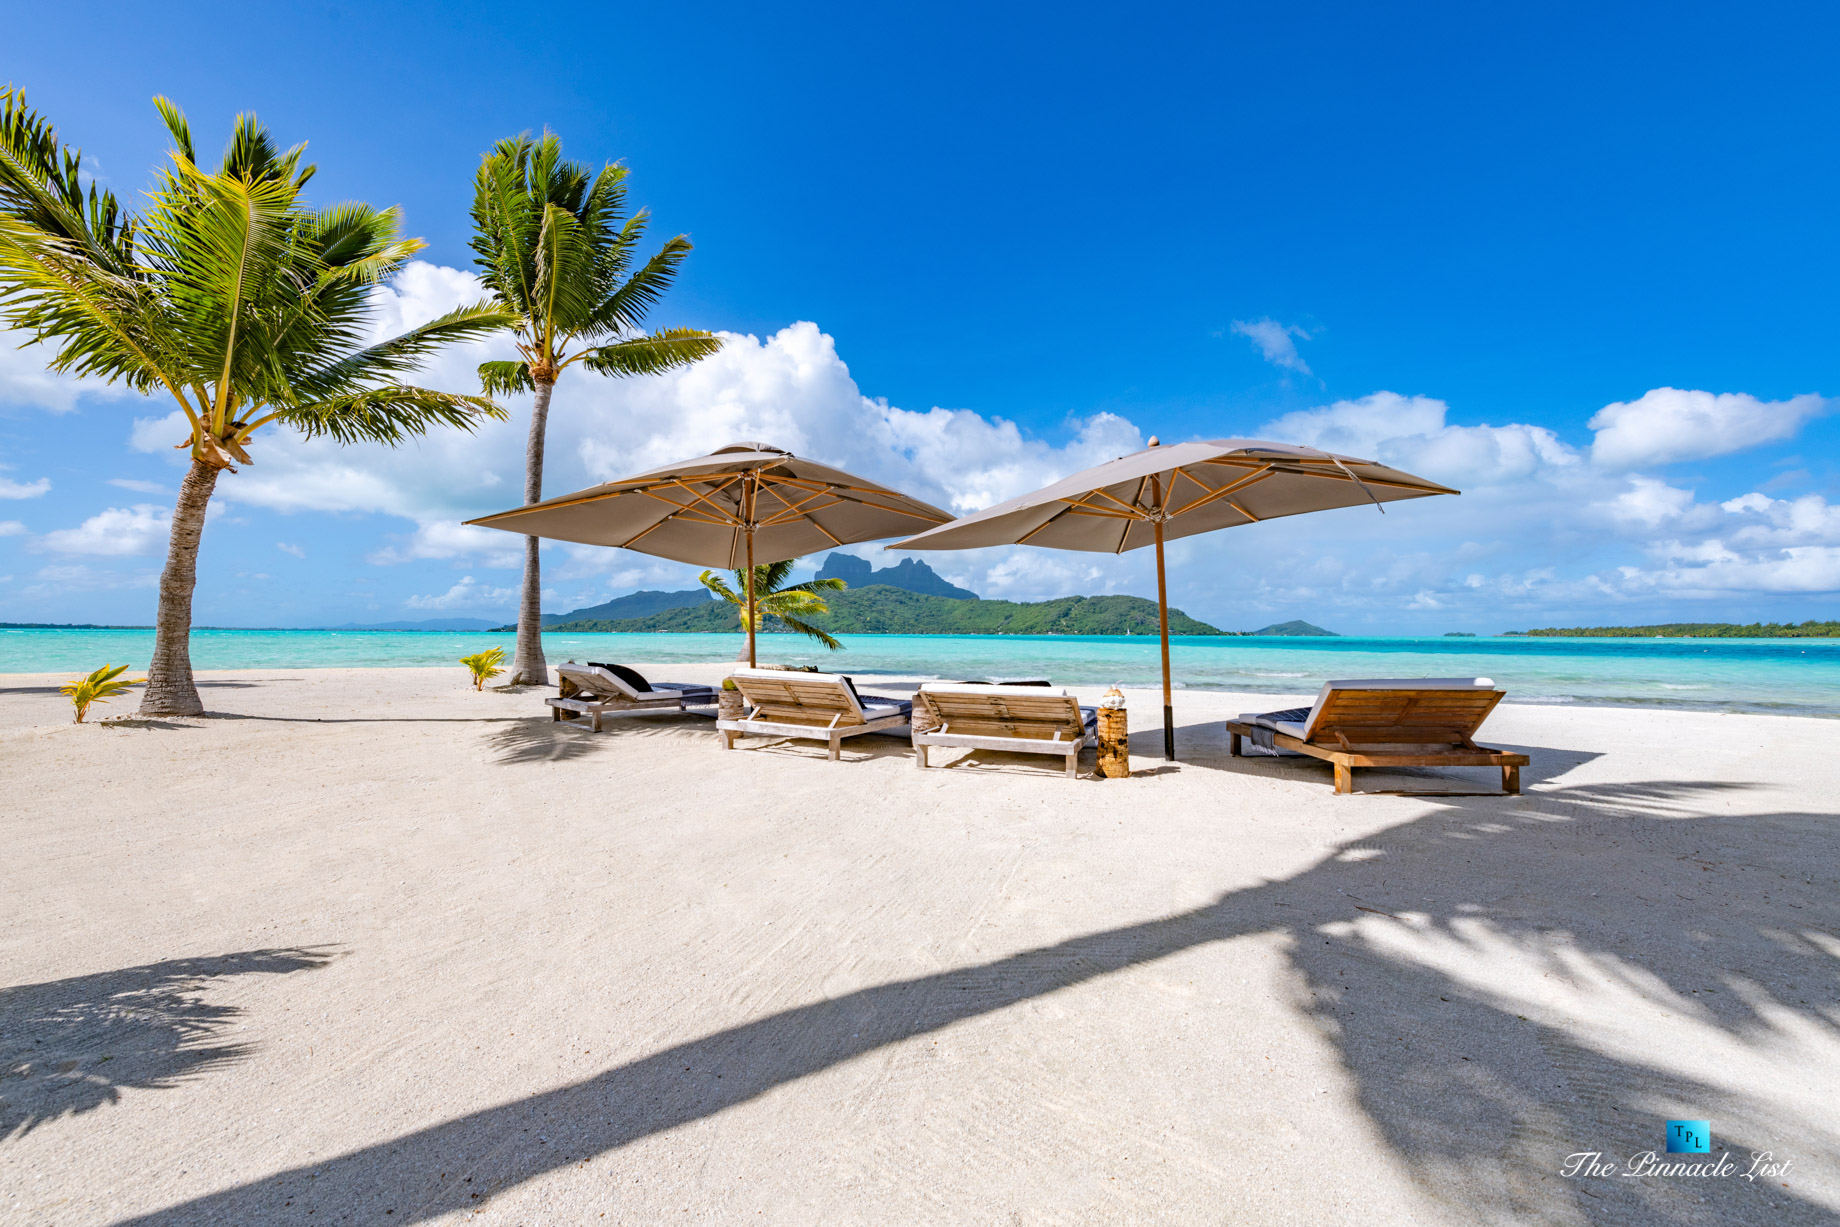 Motu Tane Private Island – Bora Bora, French Polynesia